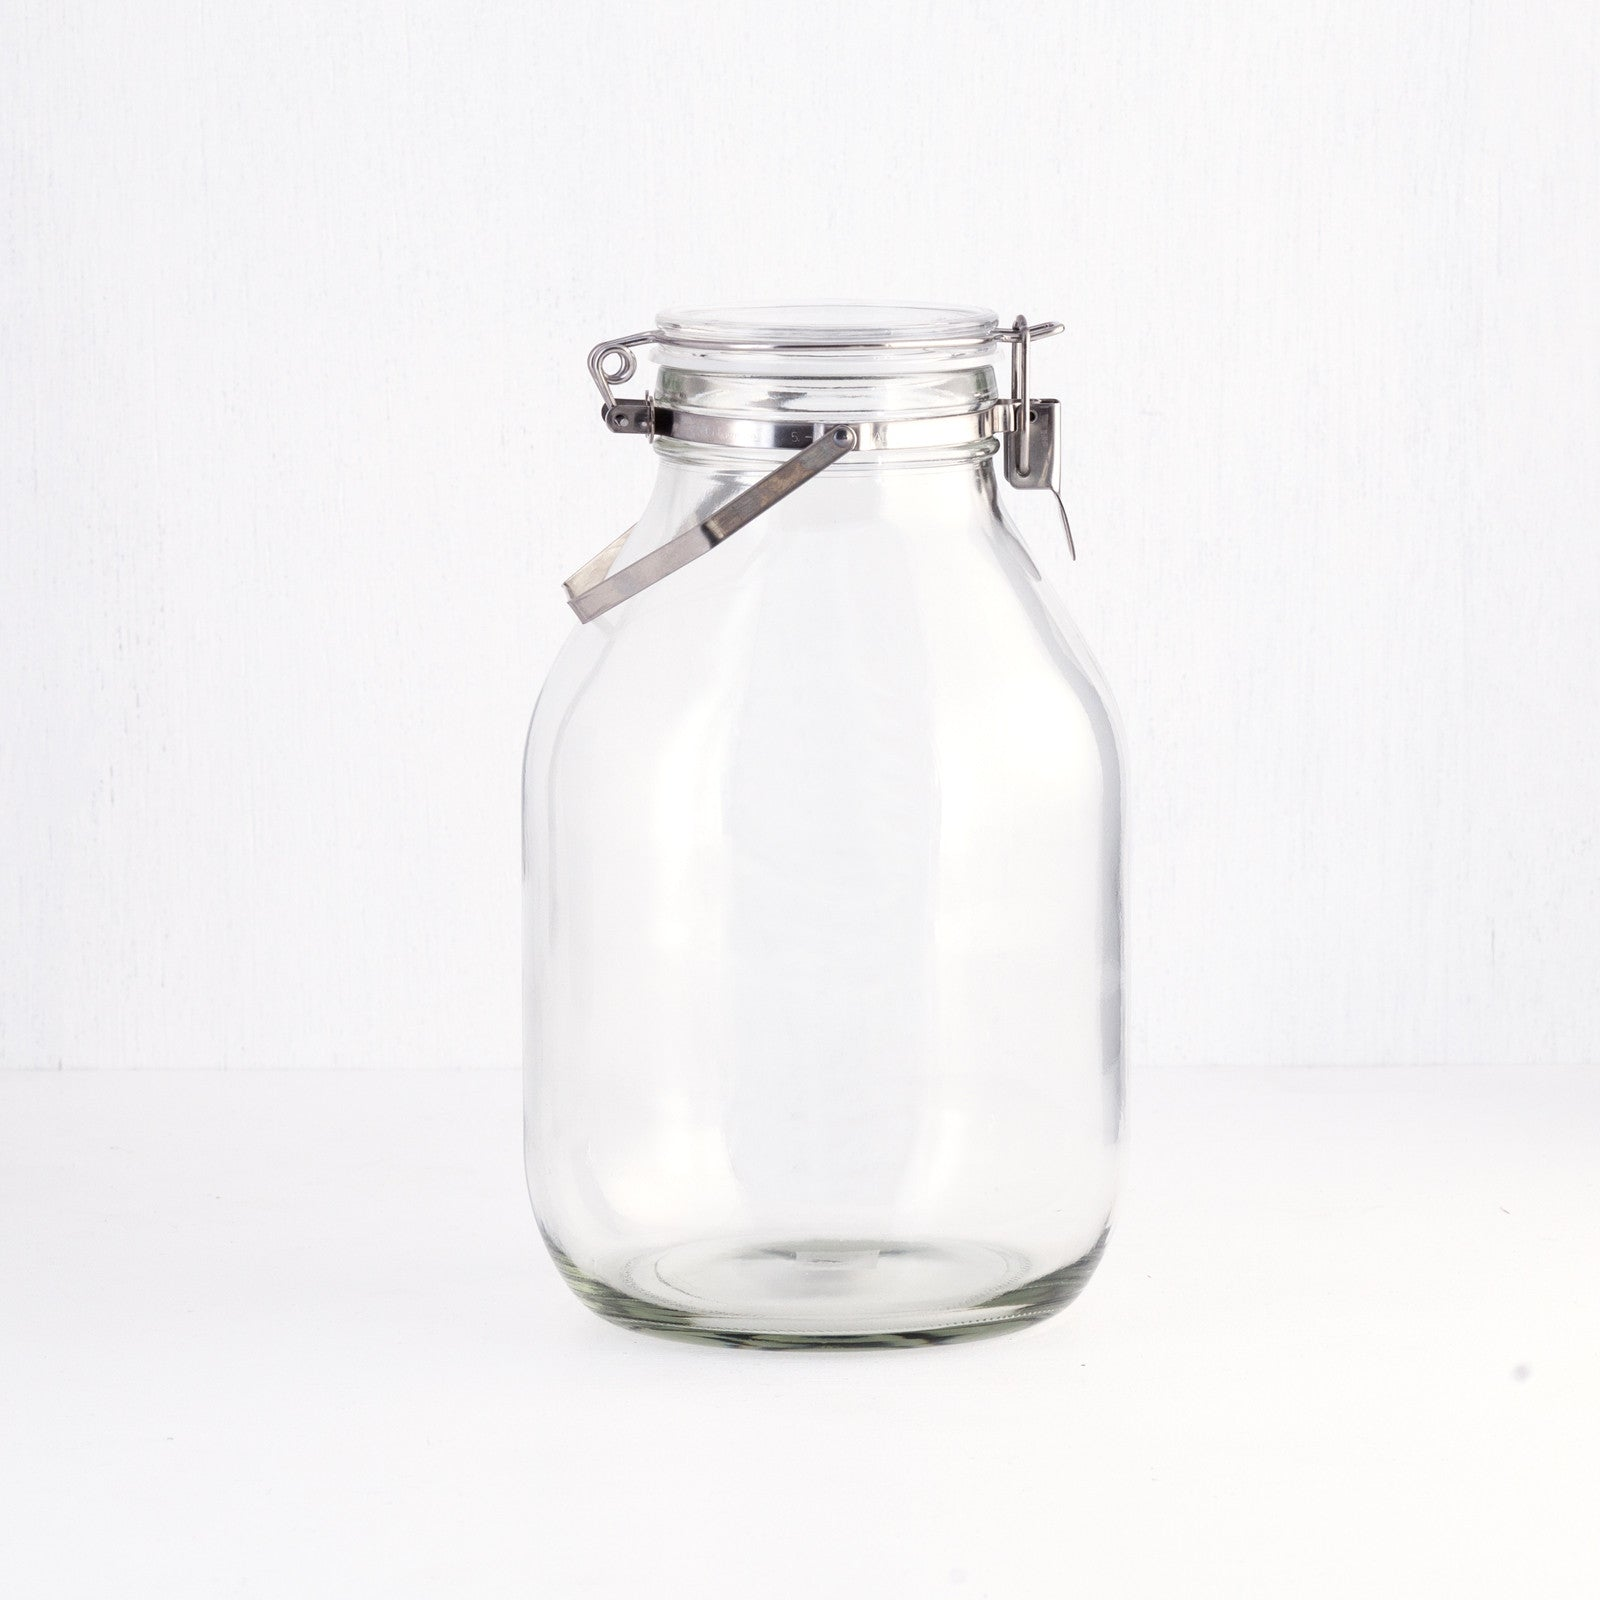 Japanese Fermentation Jar